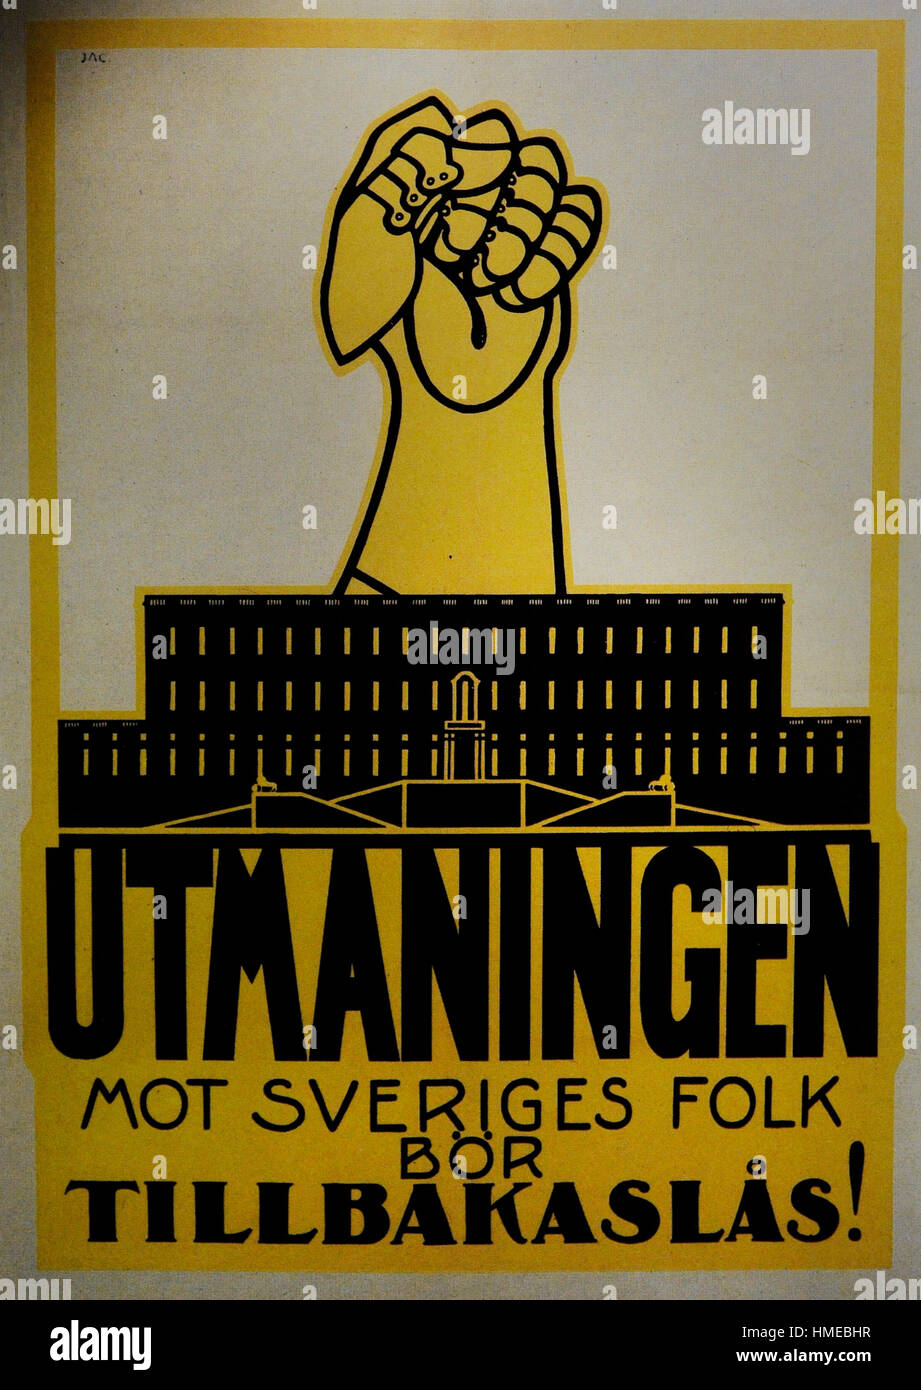 Swedish Social Democratic Party (SAP). Poster, 1914. City Museum. Malmo. Castle. Sweden. - Stock Image